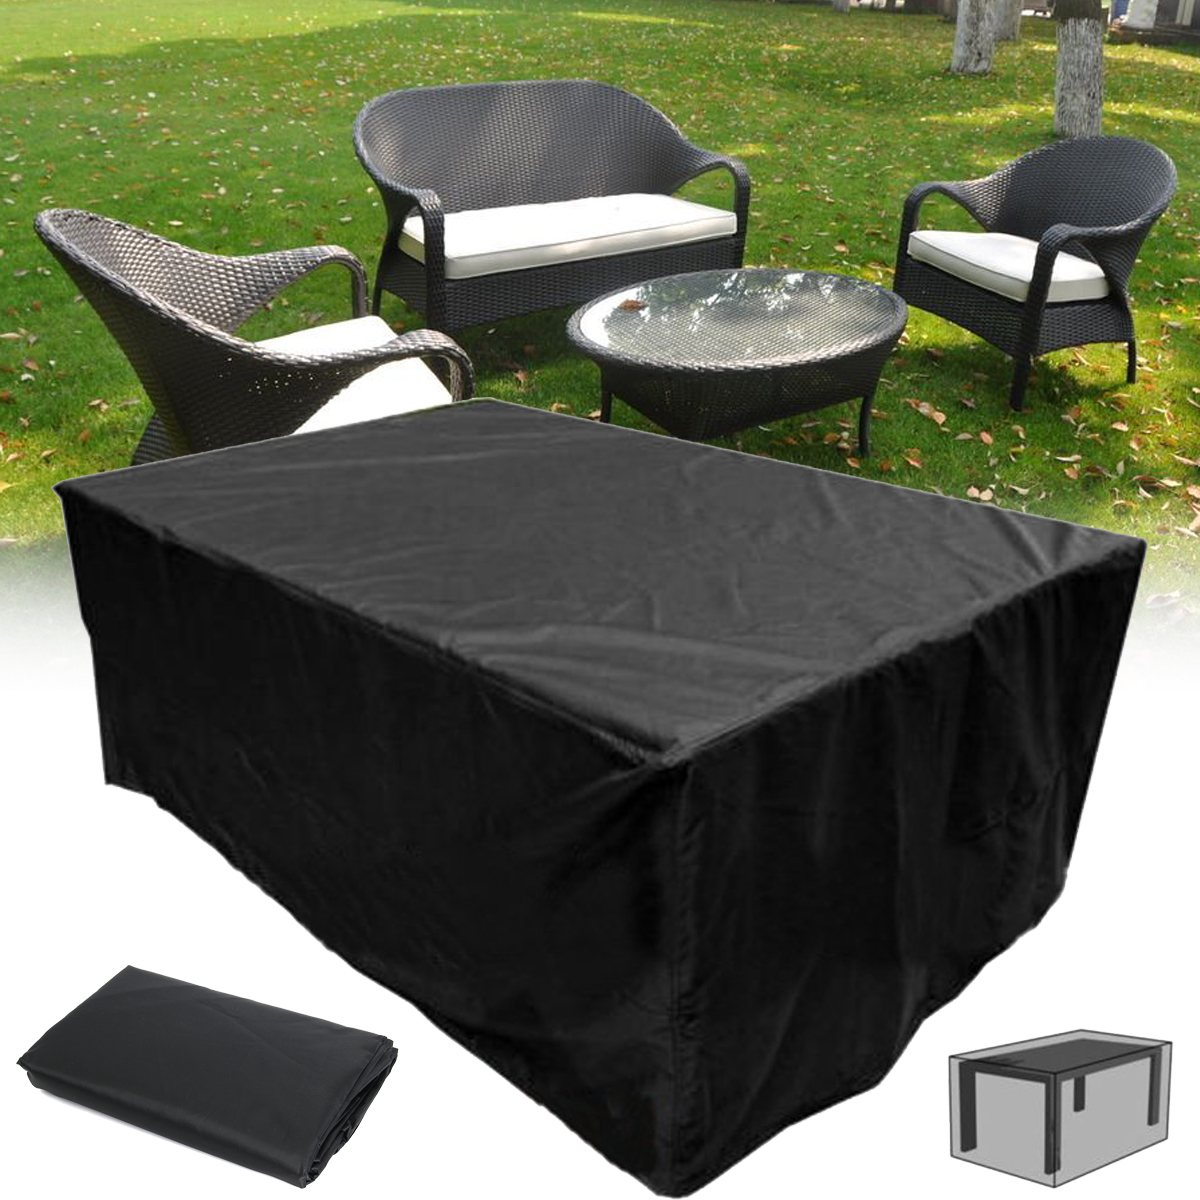 Waterproof Outdoor Furniture Dust Covers Garden Patio Shelter Sun Rain  Protection Cover 210*110*70cm Dustproof Table-in Washing Machine Covers  from Home ... - Waterproof Outdoor Furniture Dust Covers Garden Patio Shelter Sun